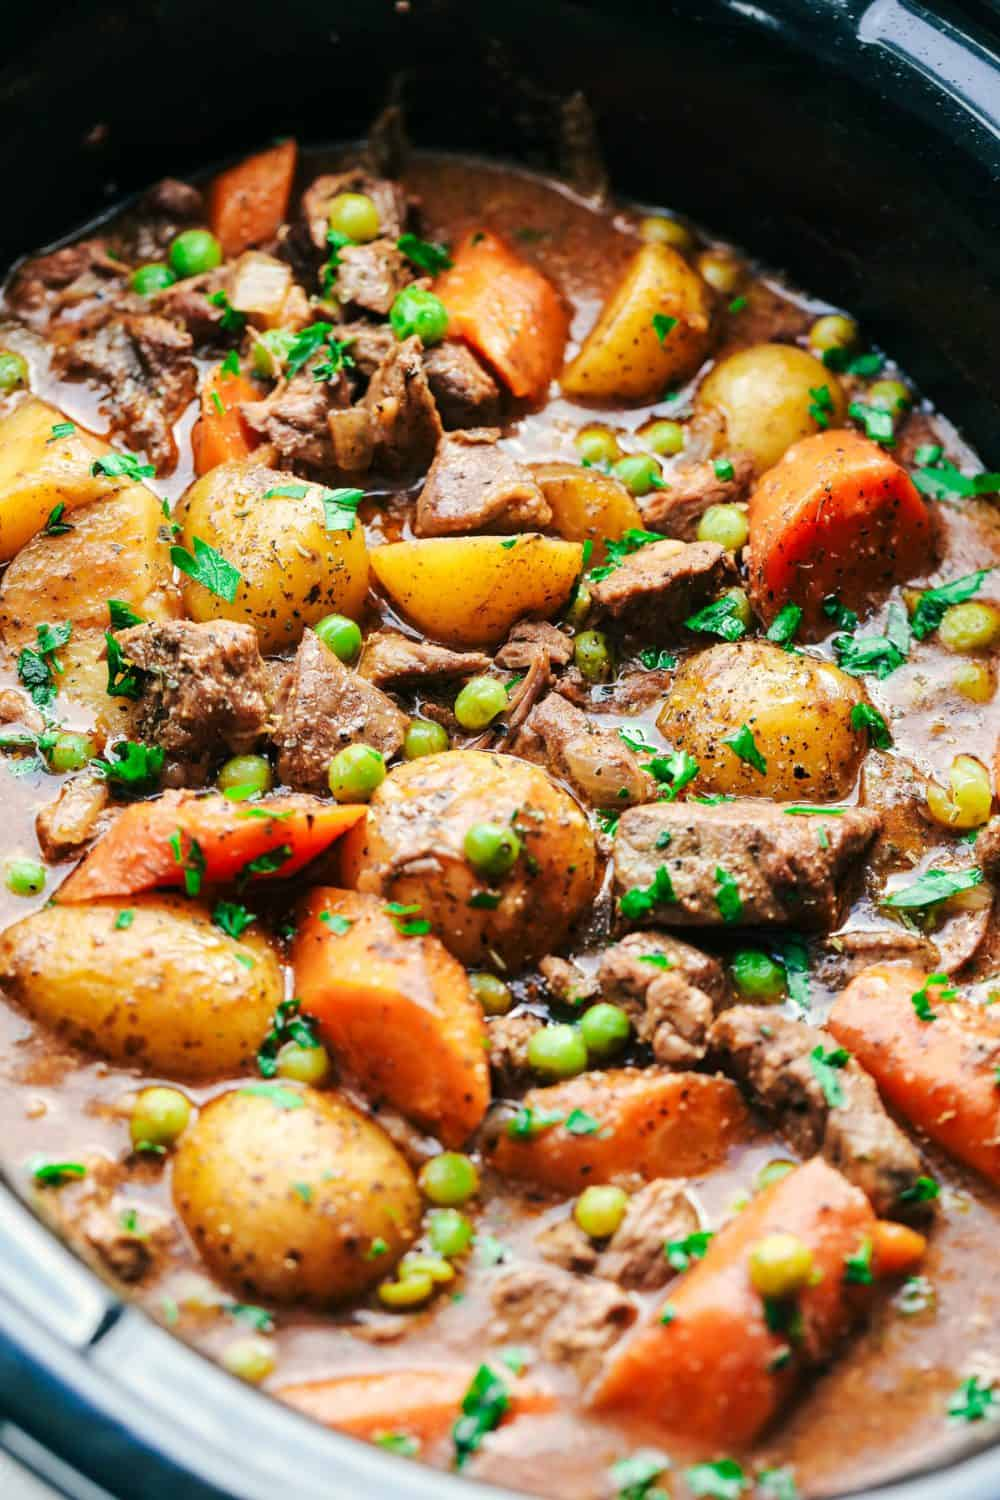 Best Ever Slow Cooker Beef Stew in a slow cooker.